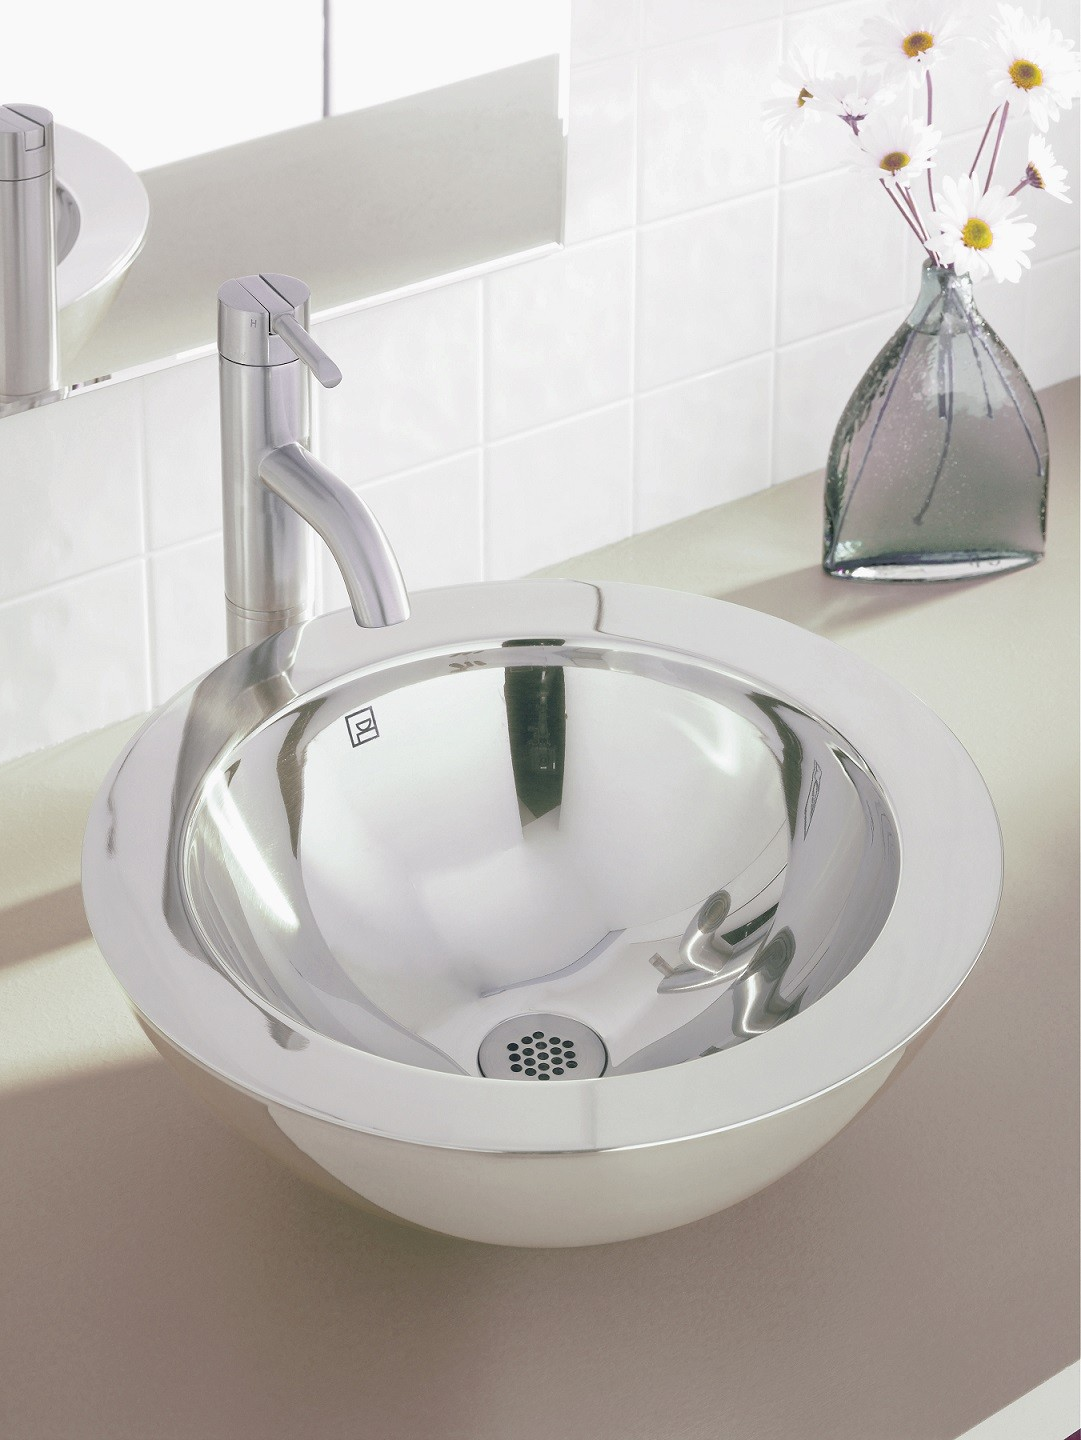 Stainless Steel Bathroom Sinks | Decolav Simin 1228 Simply Stainless Collection Round Above